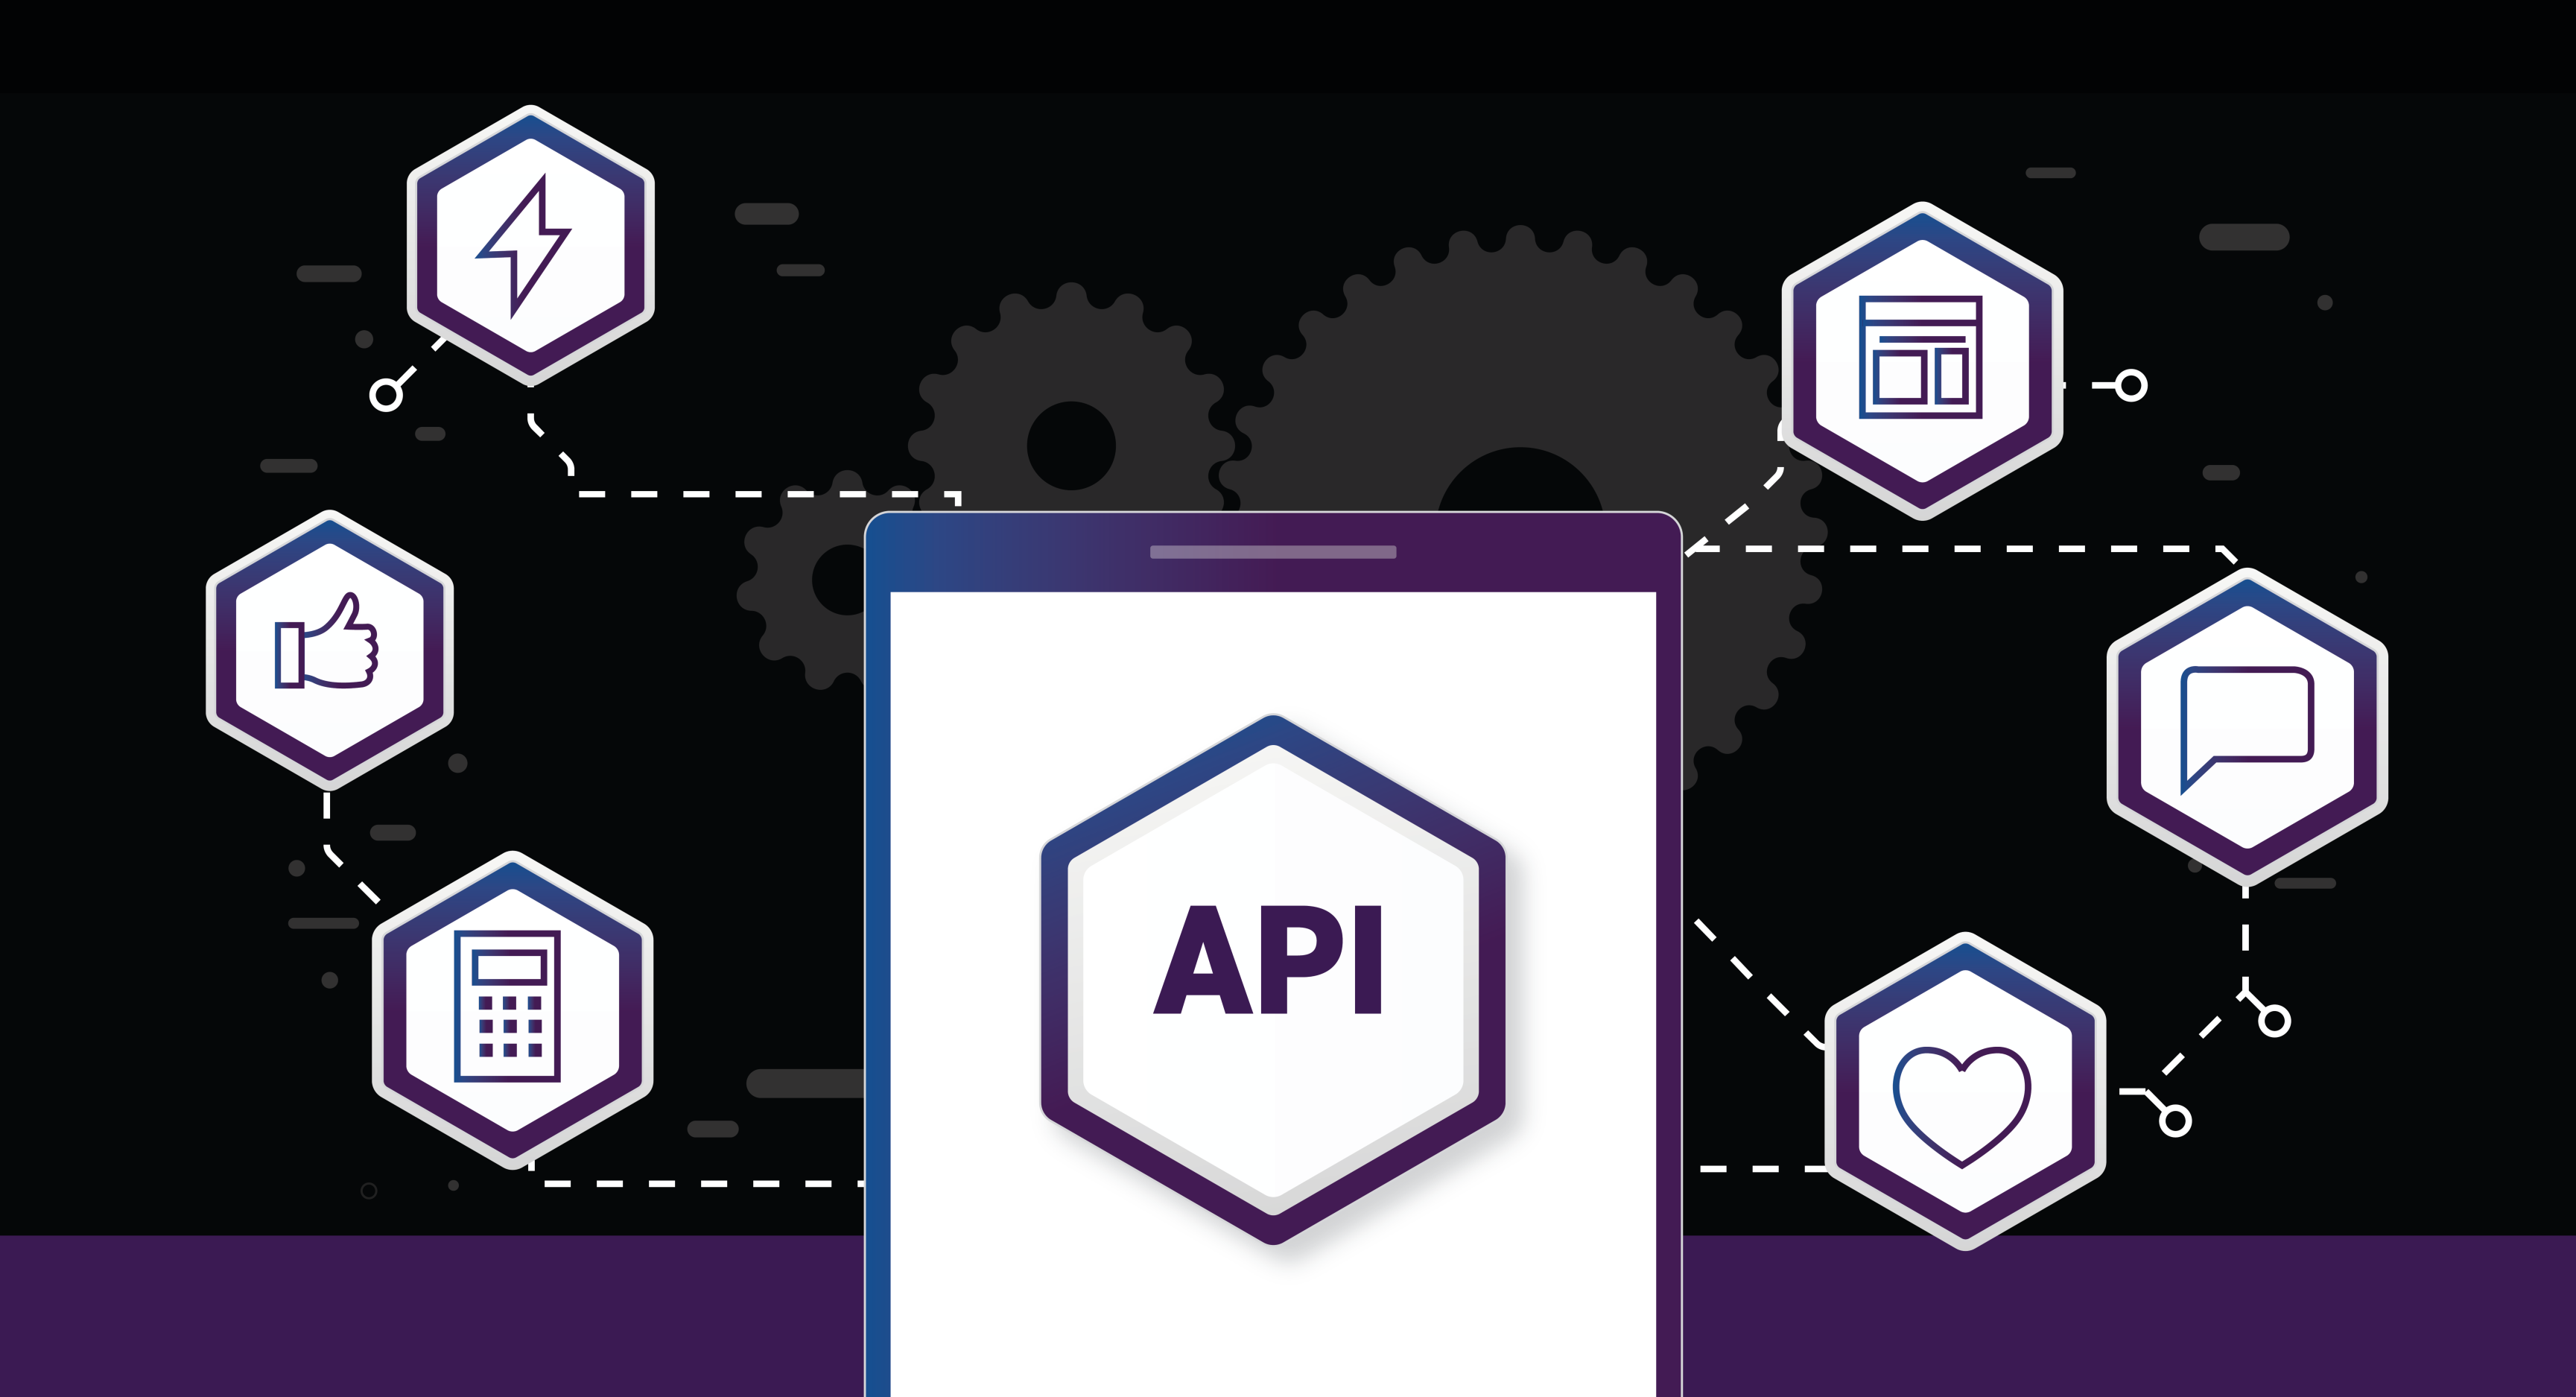 diagram of API surrounded by innovation, technology icons